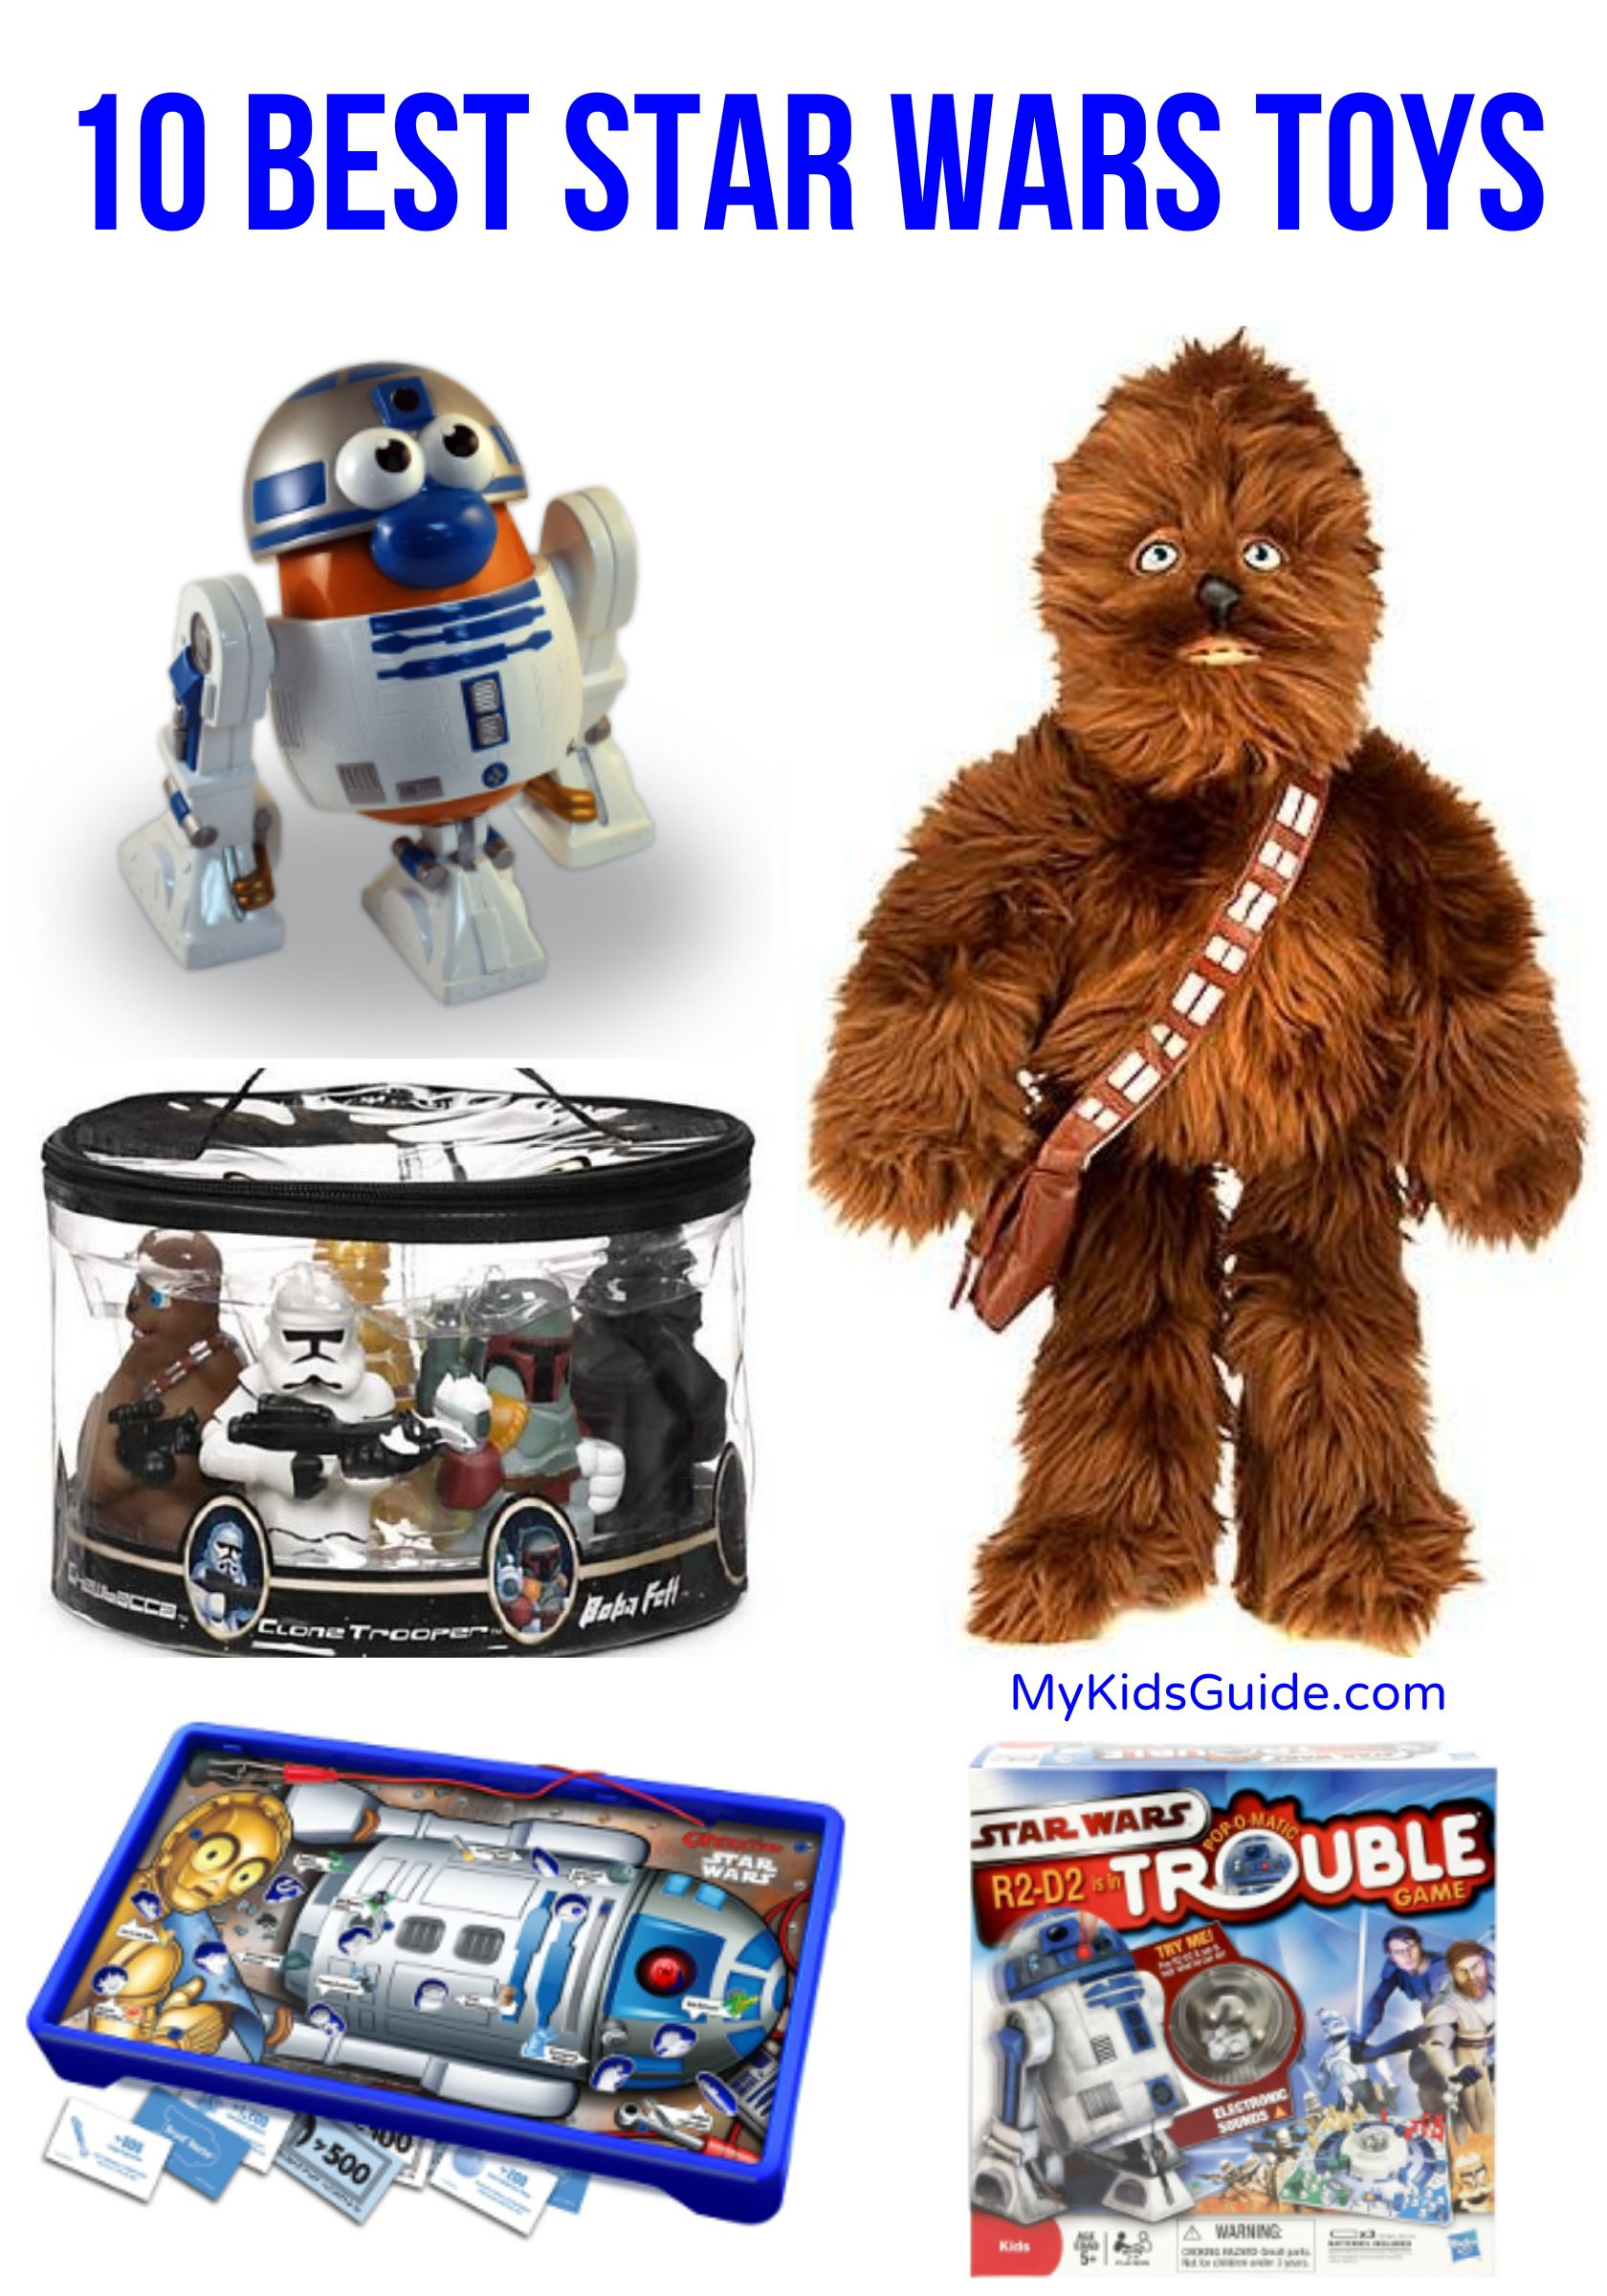 10 Best Star Wars Toys for Kids My Kids Guide